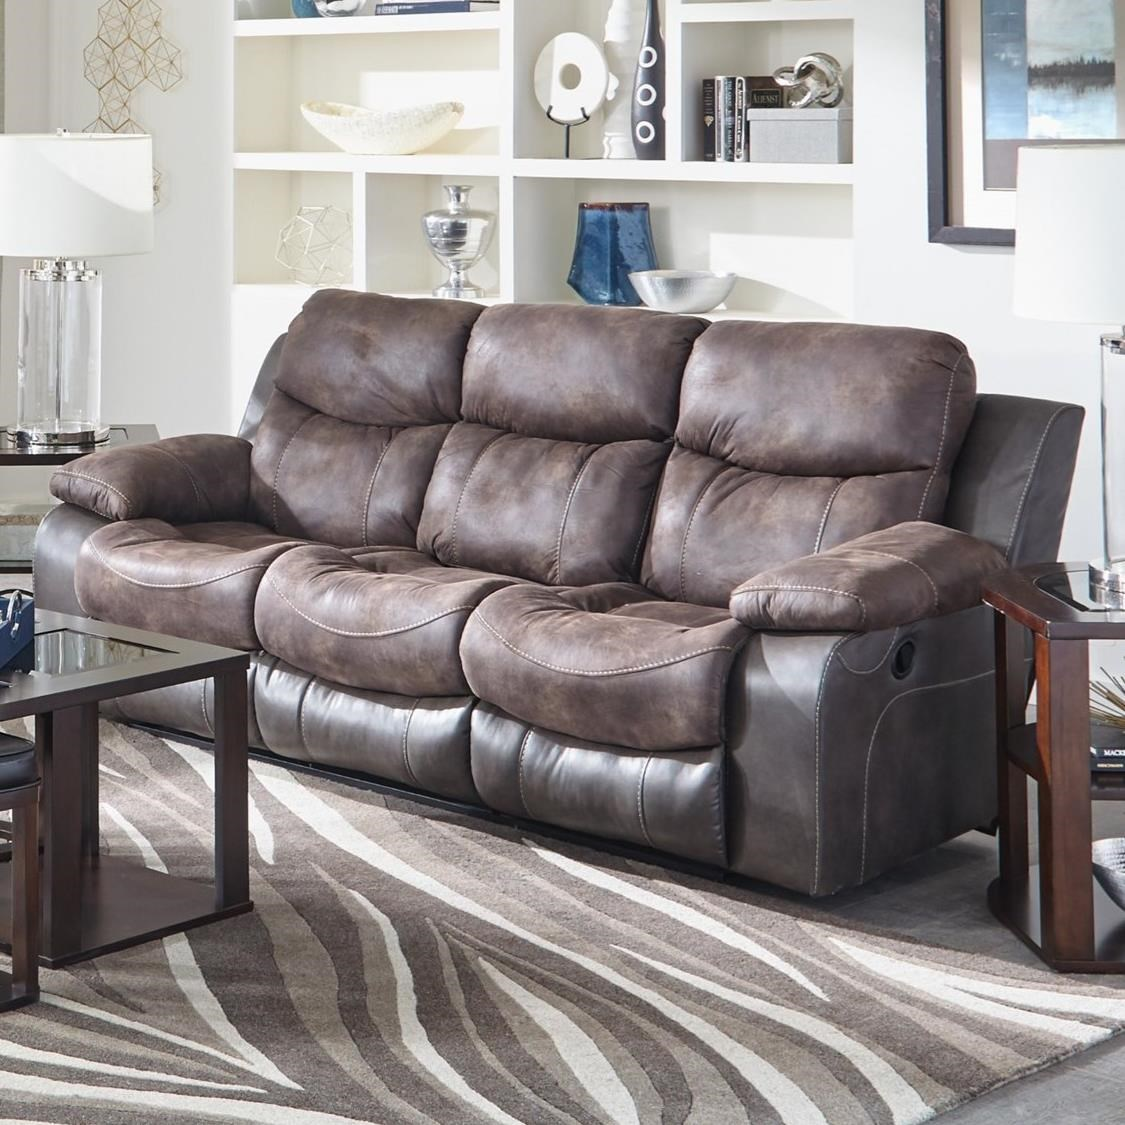 Catnapper Henderson Reclining Sofa With Drop Down Table Lindy 39 S Furniture Company Reclining